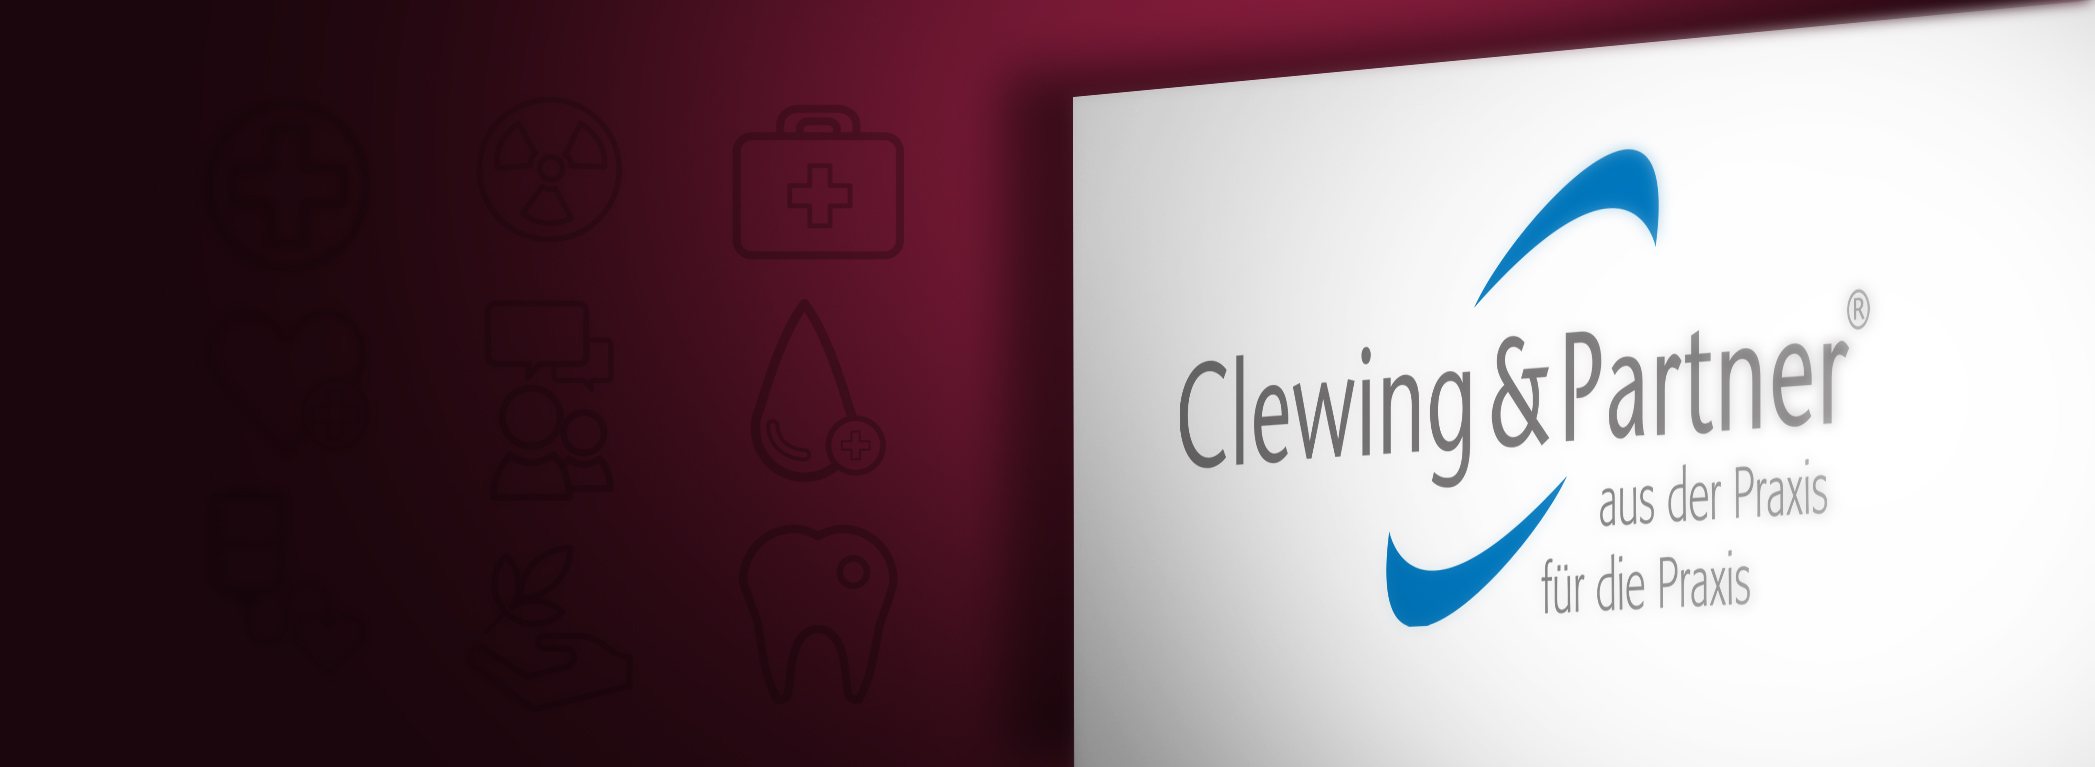 Clewing & Partner